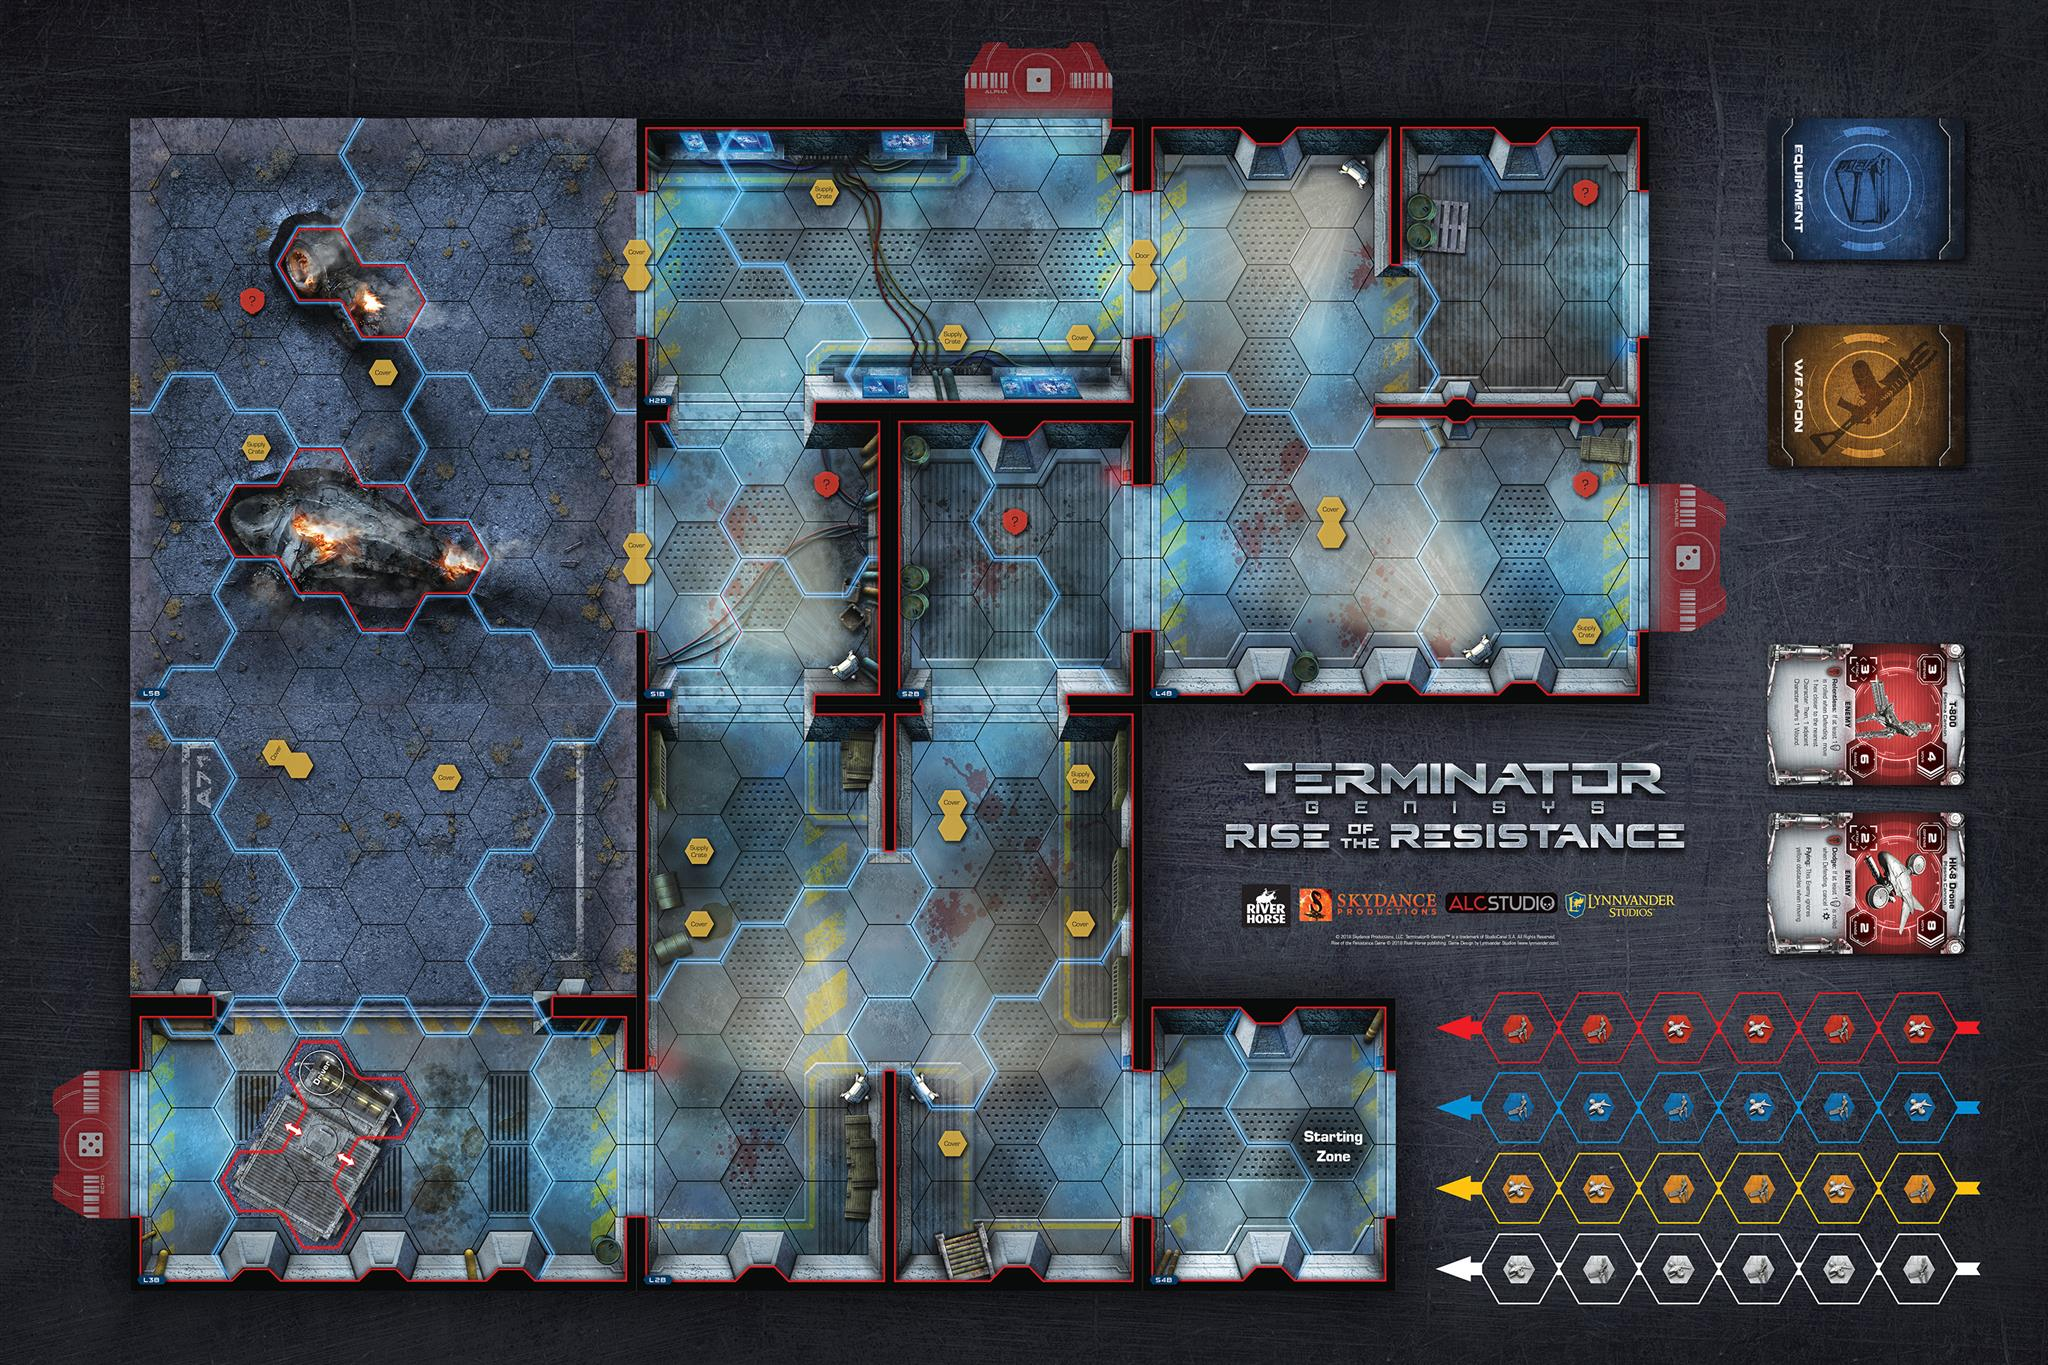 GenCon Demo playmat for Terminator Genisys: Rise of the Resistance by River Horse